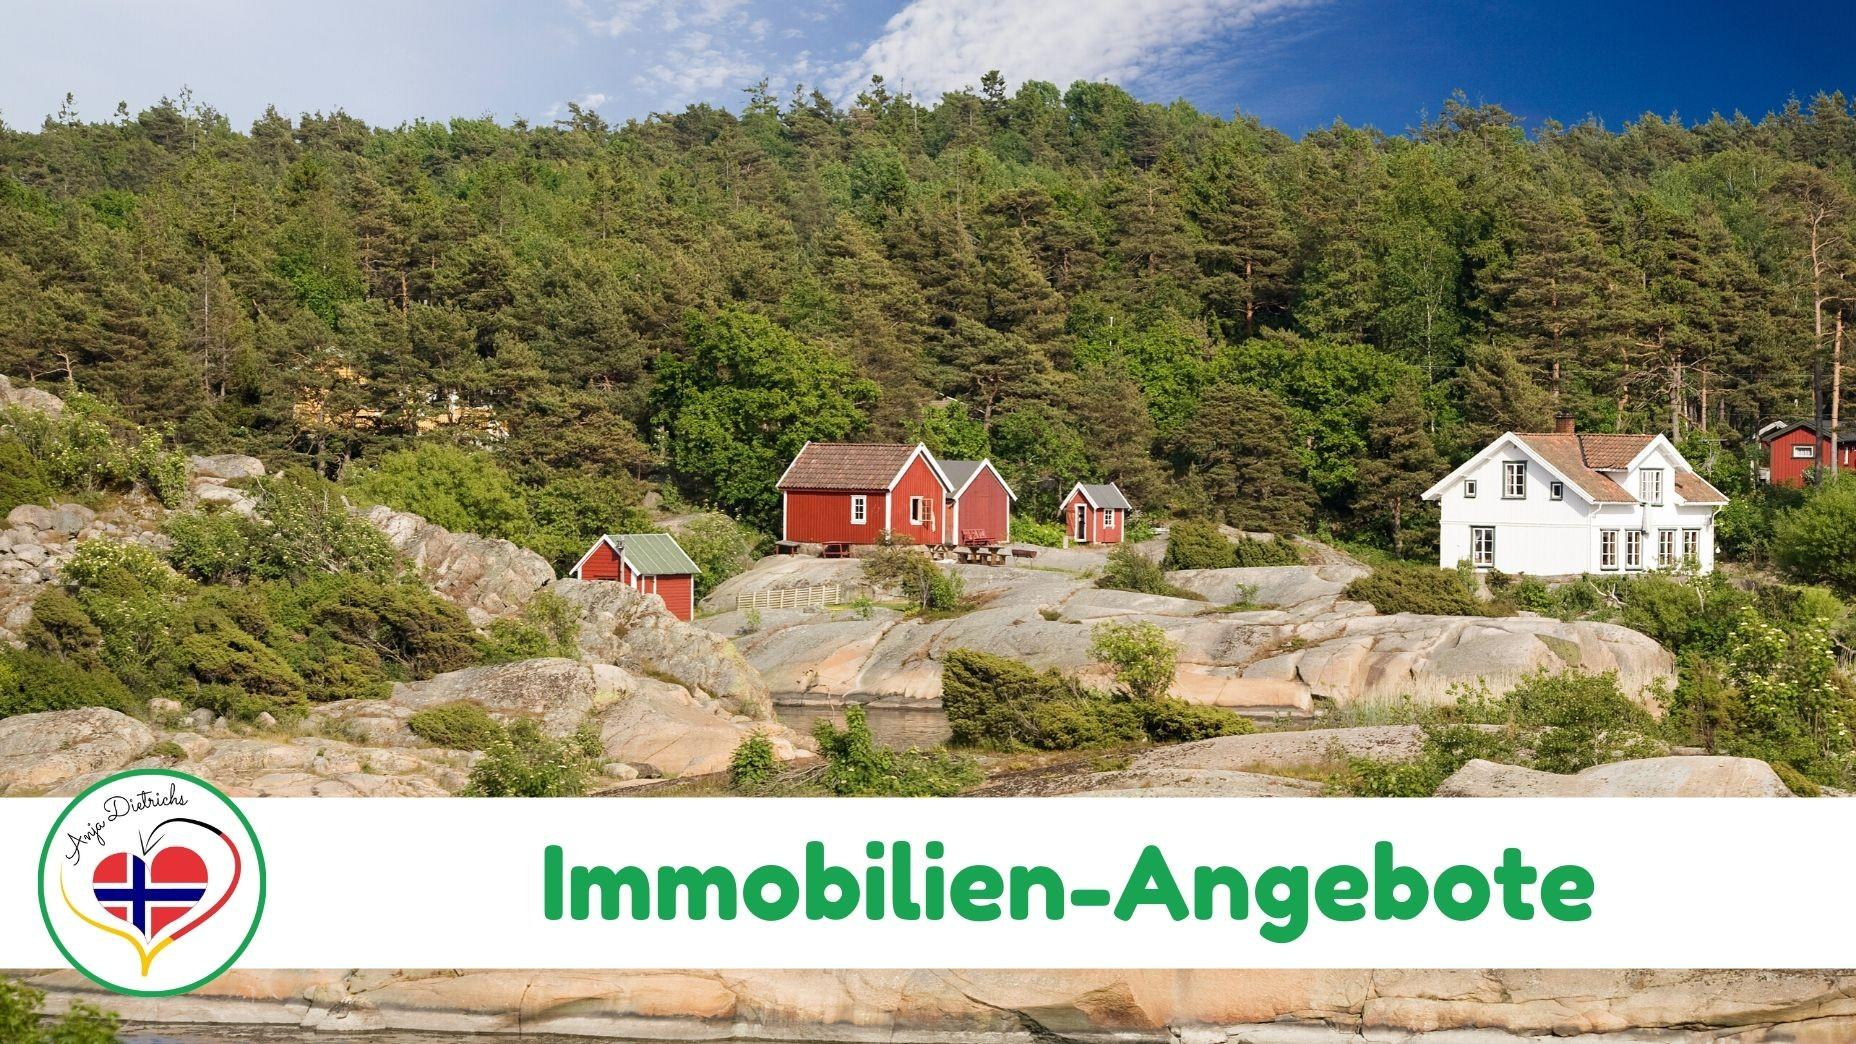 Immobilien-Angebote in Norwegen